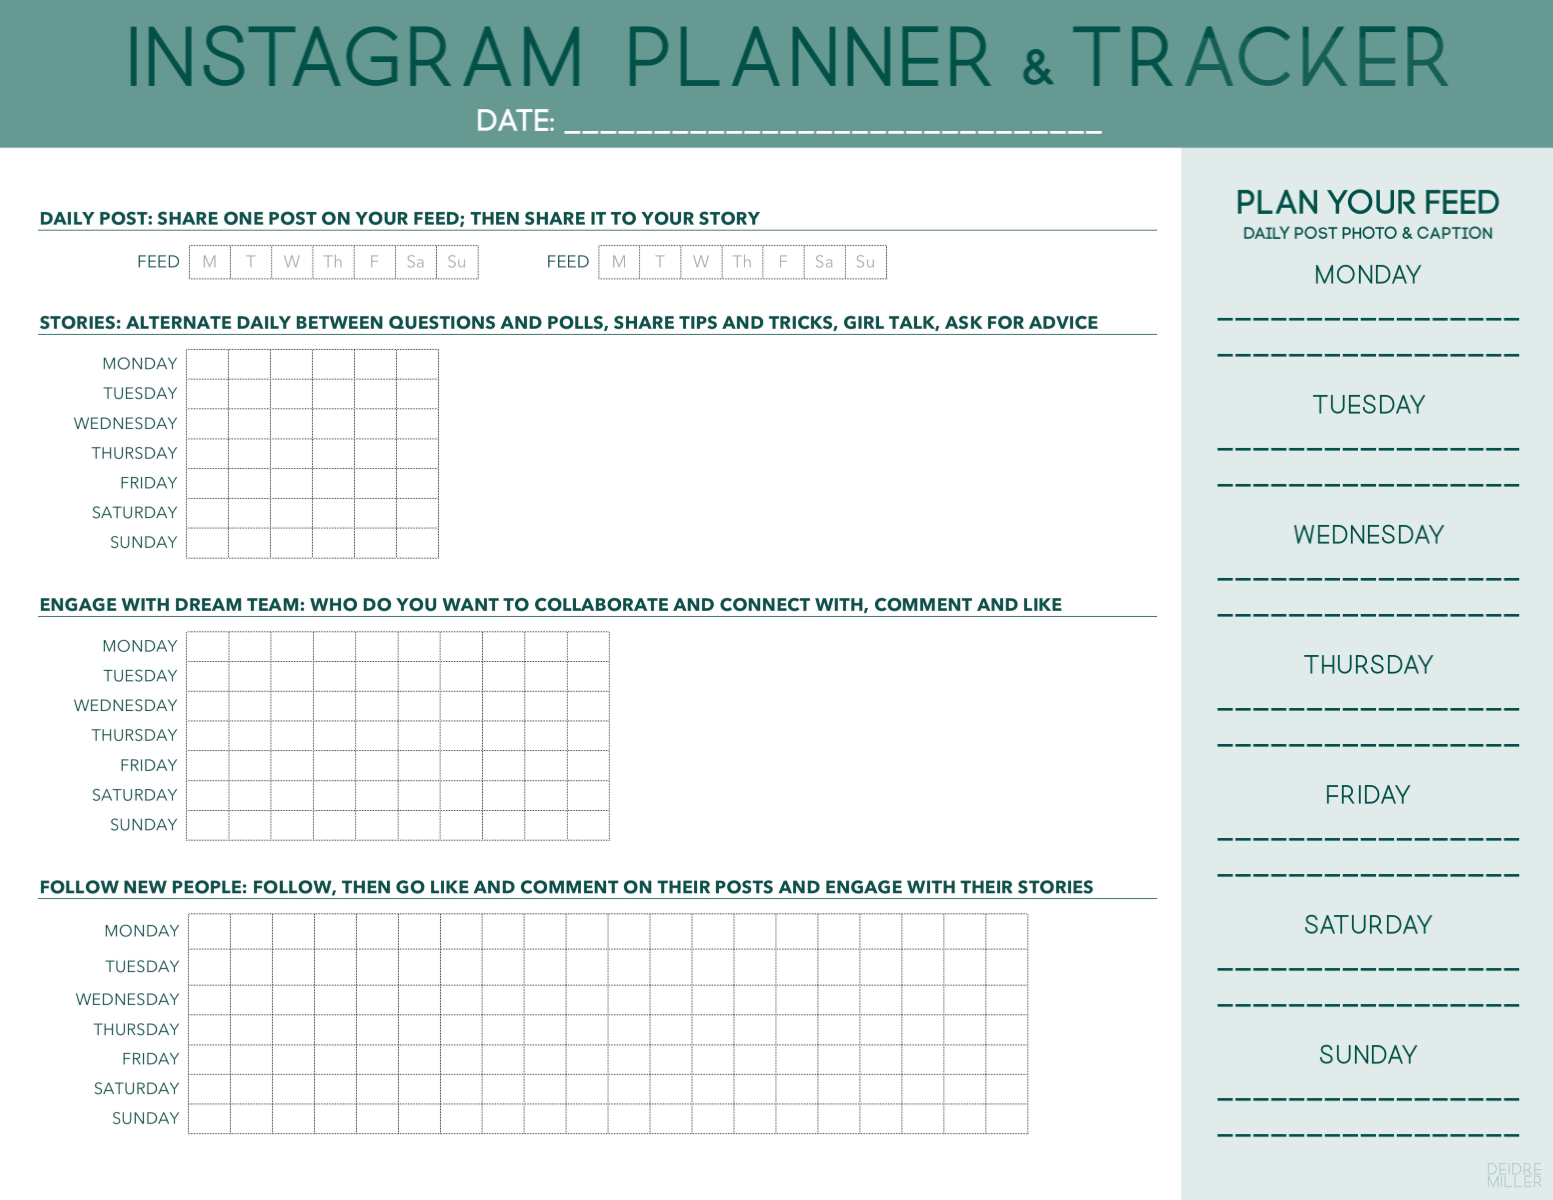 IG Daily Tracker.png